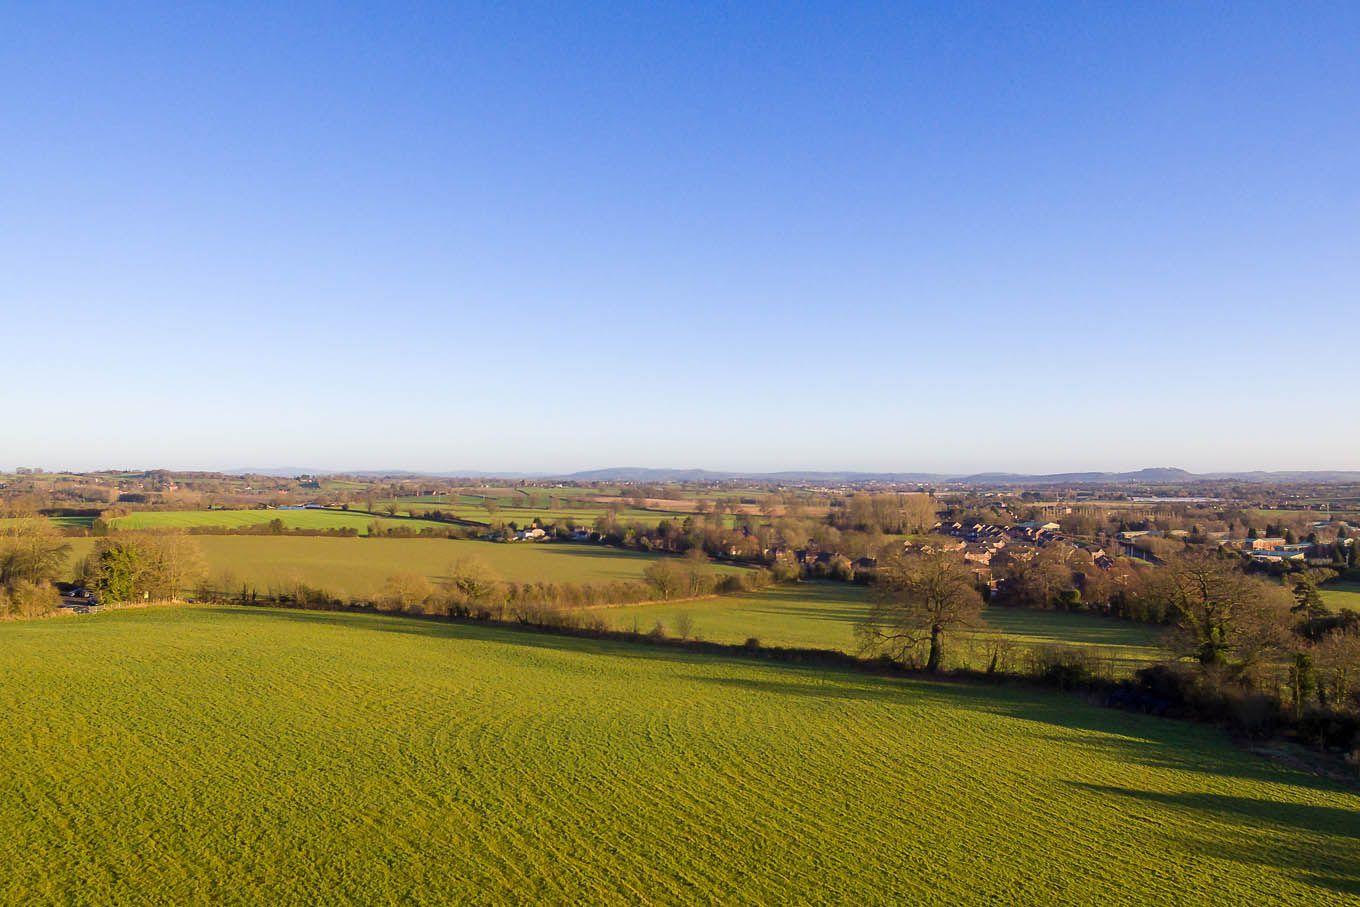 Aerial view of rural Herefordshire taken with a Drone.